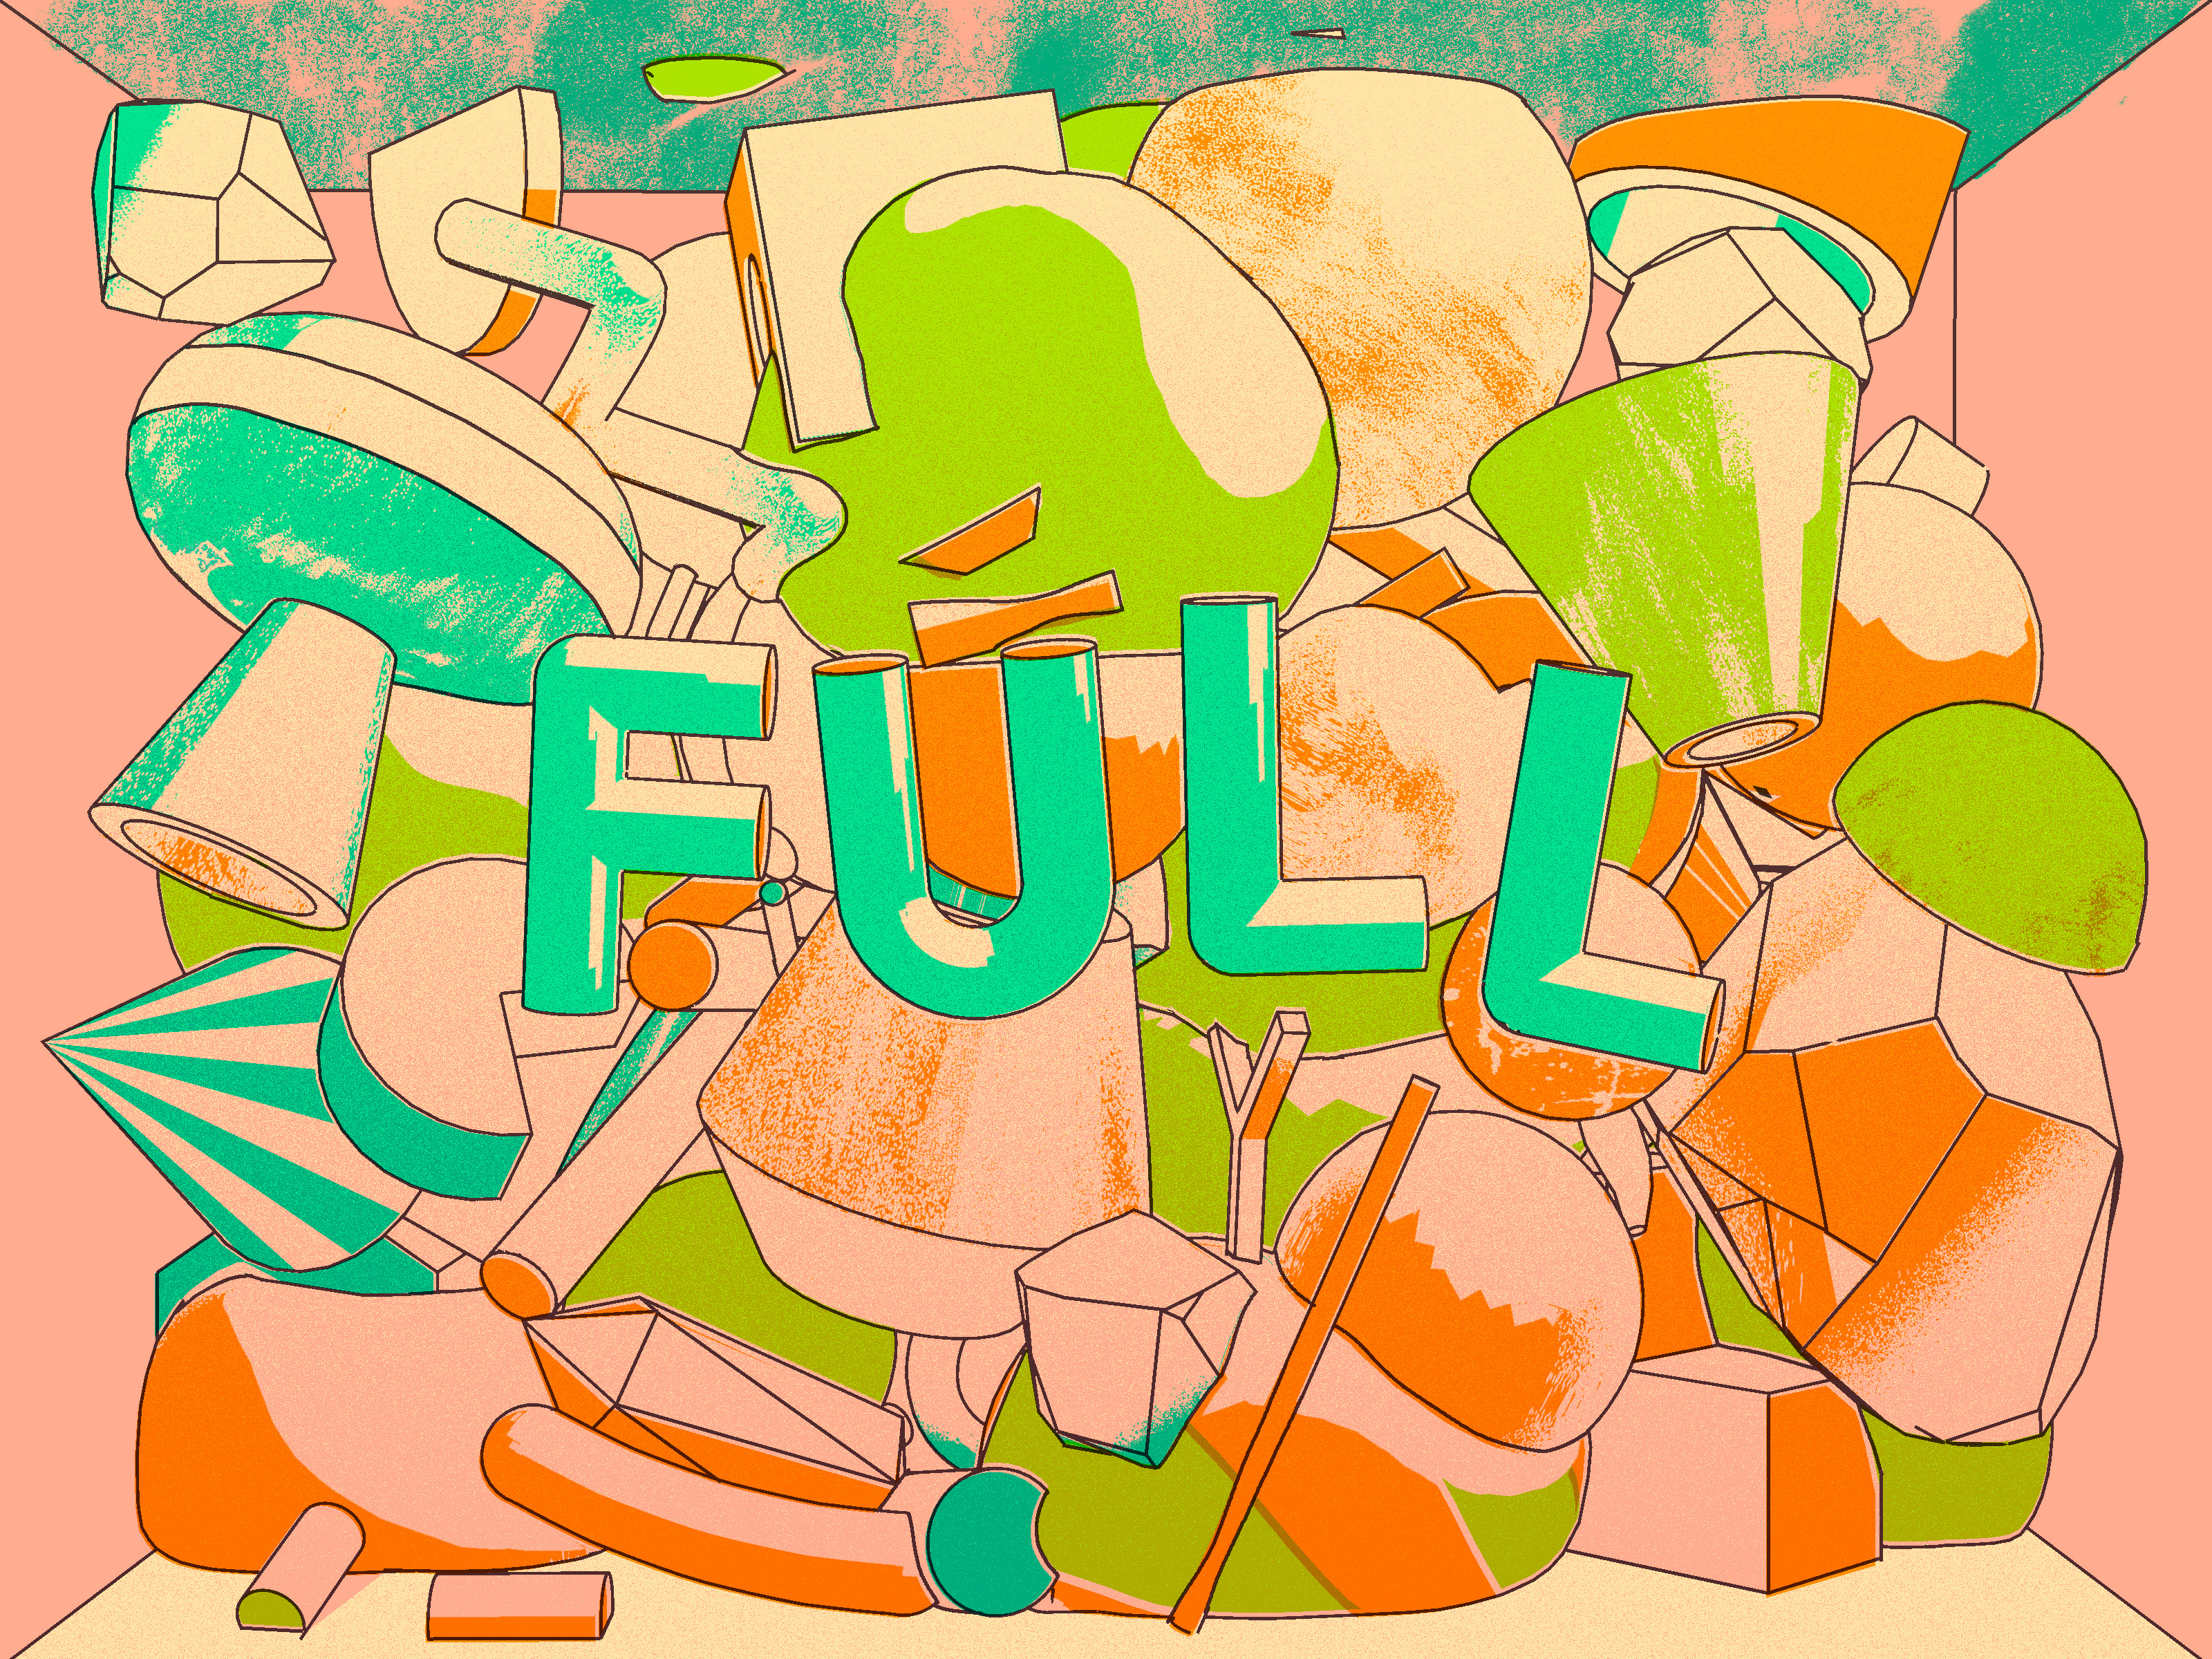 Illustration of the letters F-U-L-L amongst a pile of rocks, pipes and other detritus